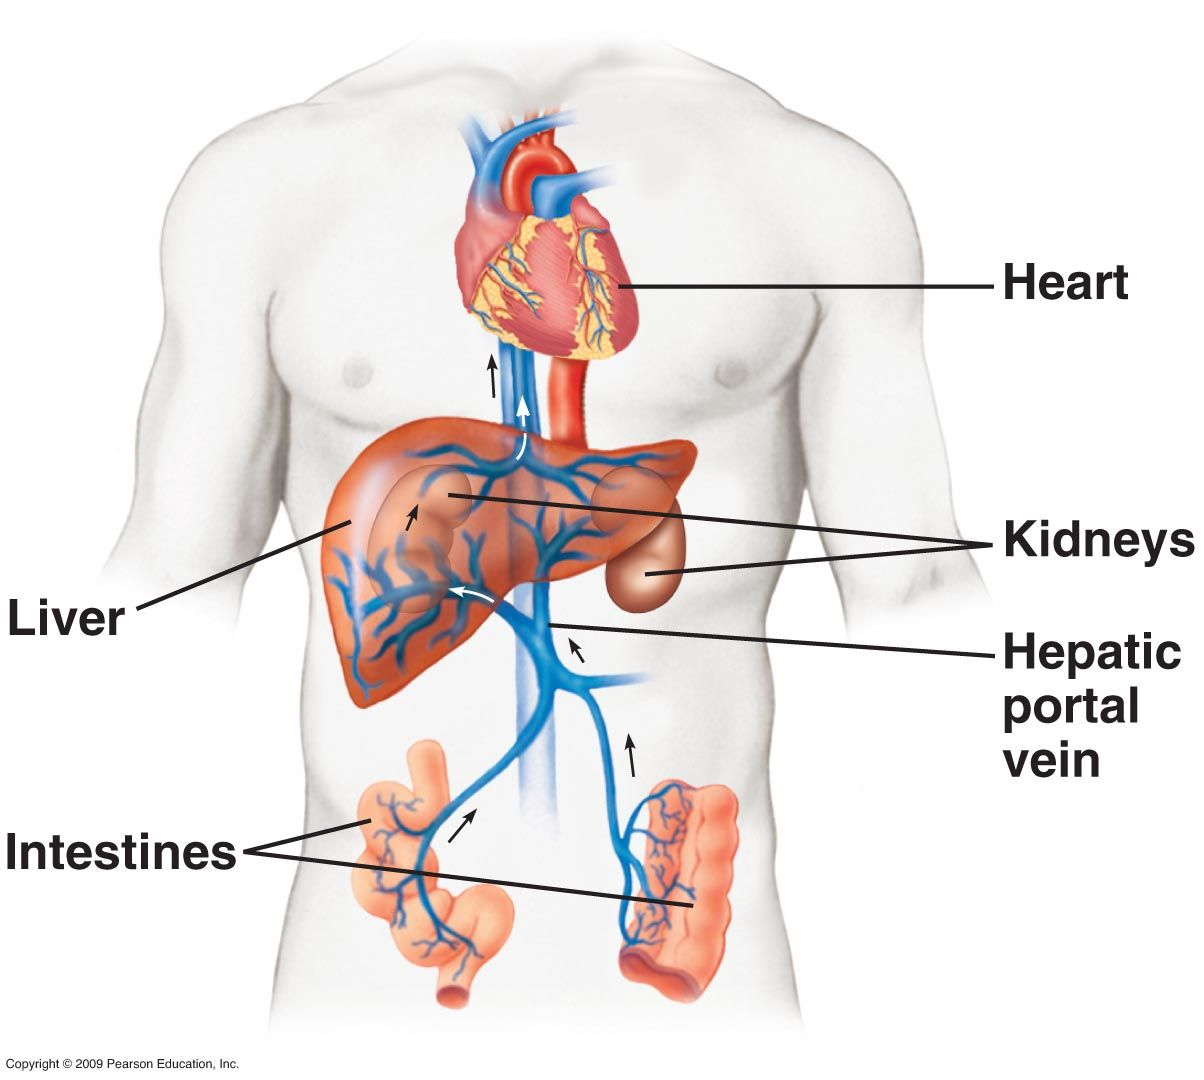 The portal vein is an important vessel of the human circulatory system